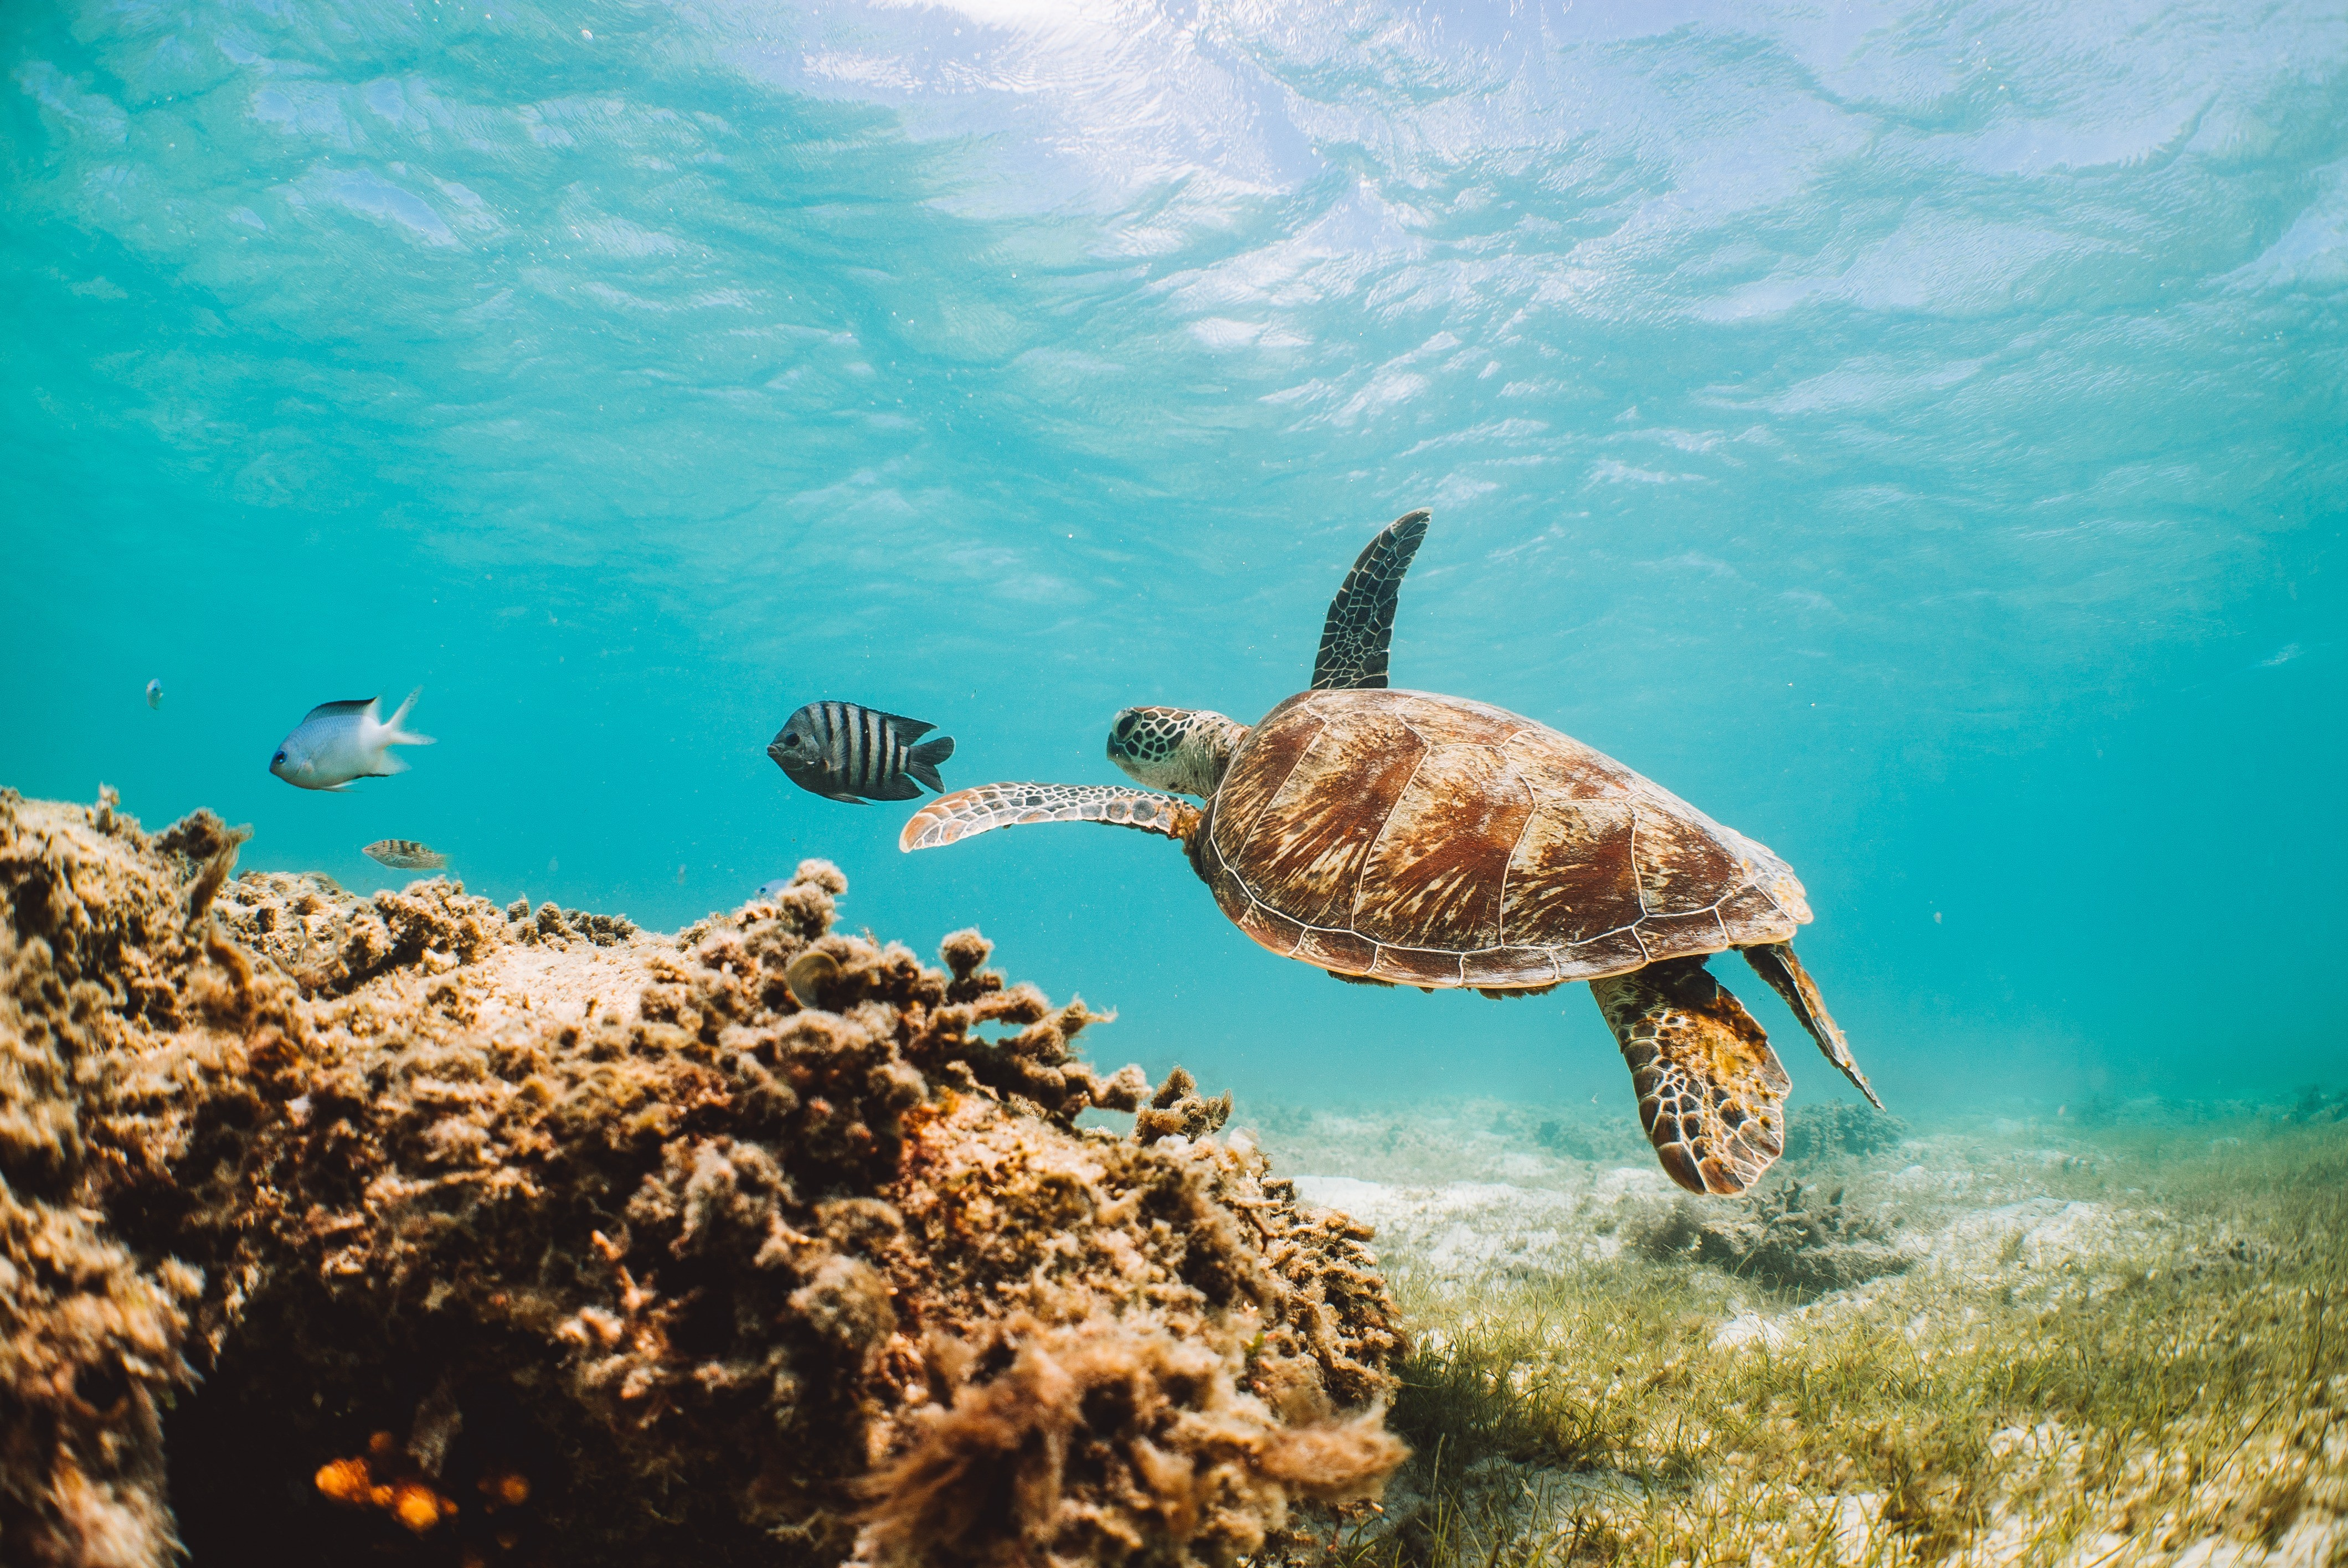 Queensland: Places to visit and things to do - Tourism Australia